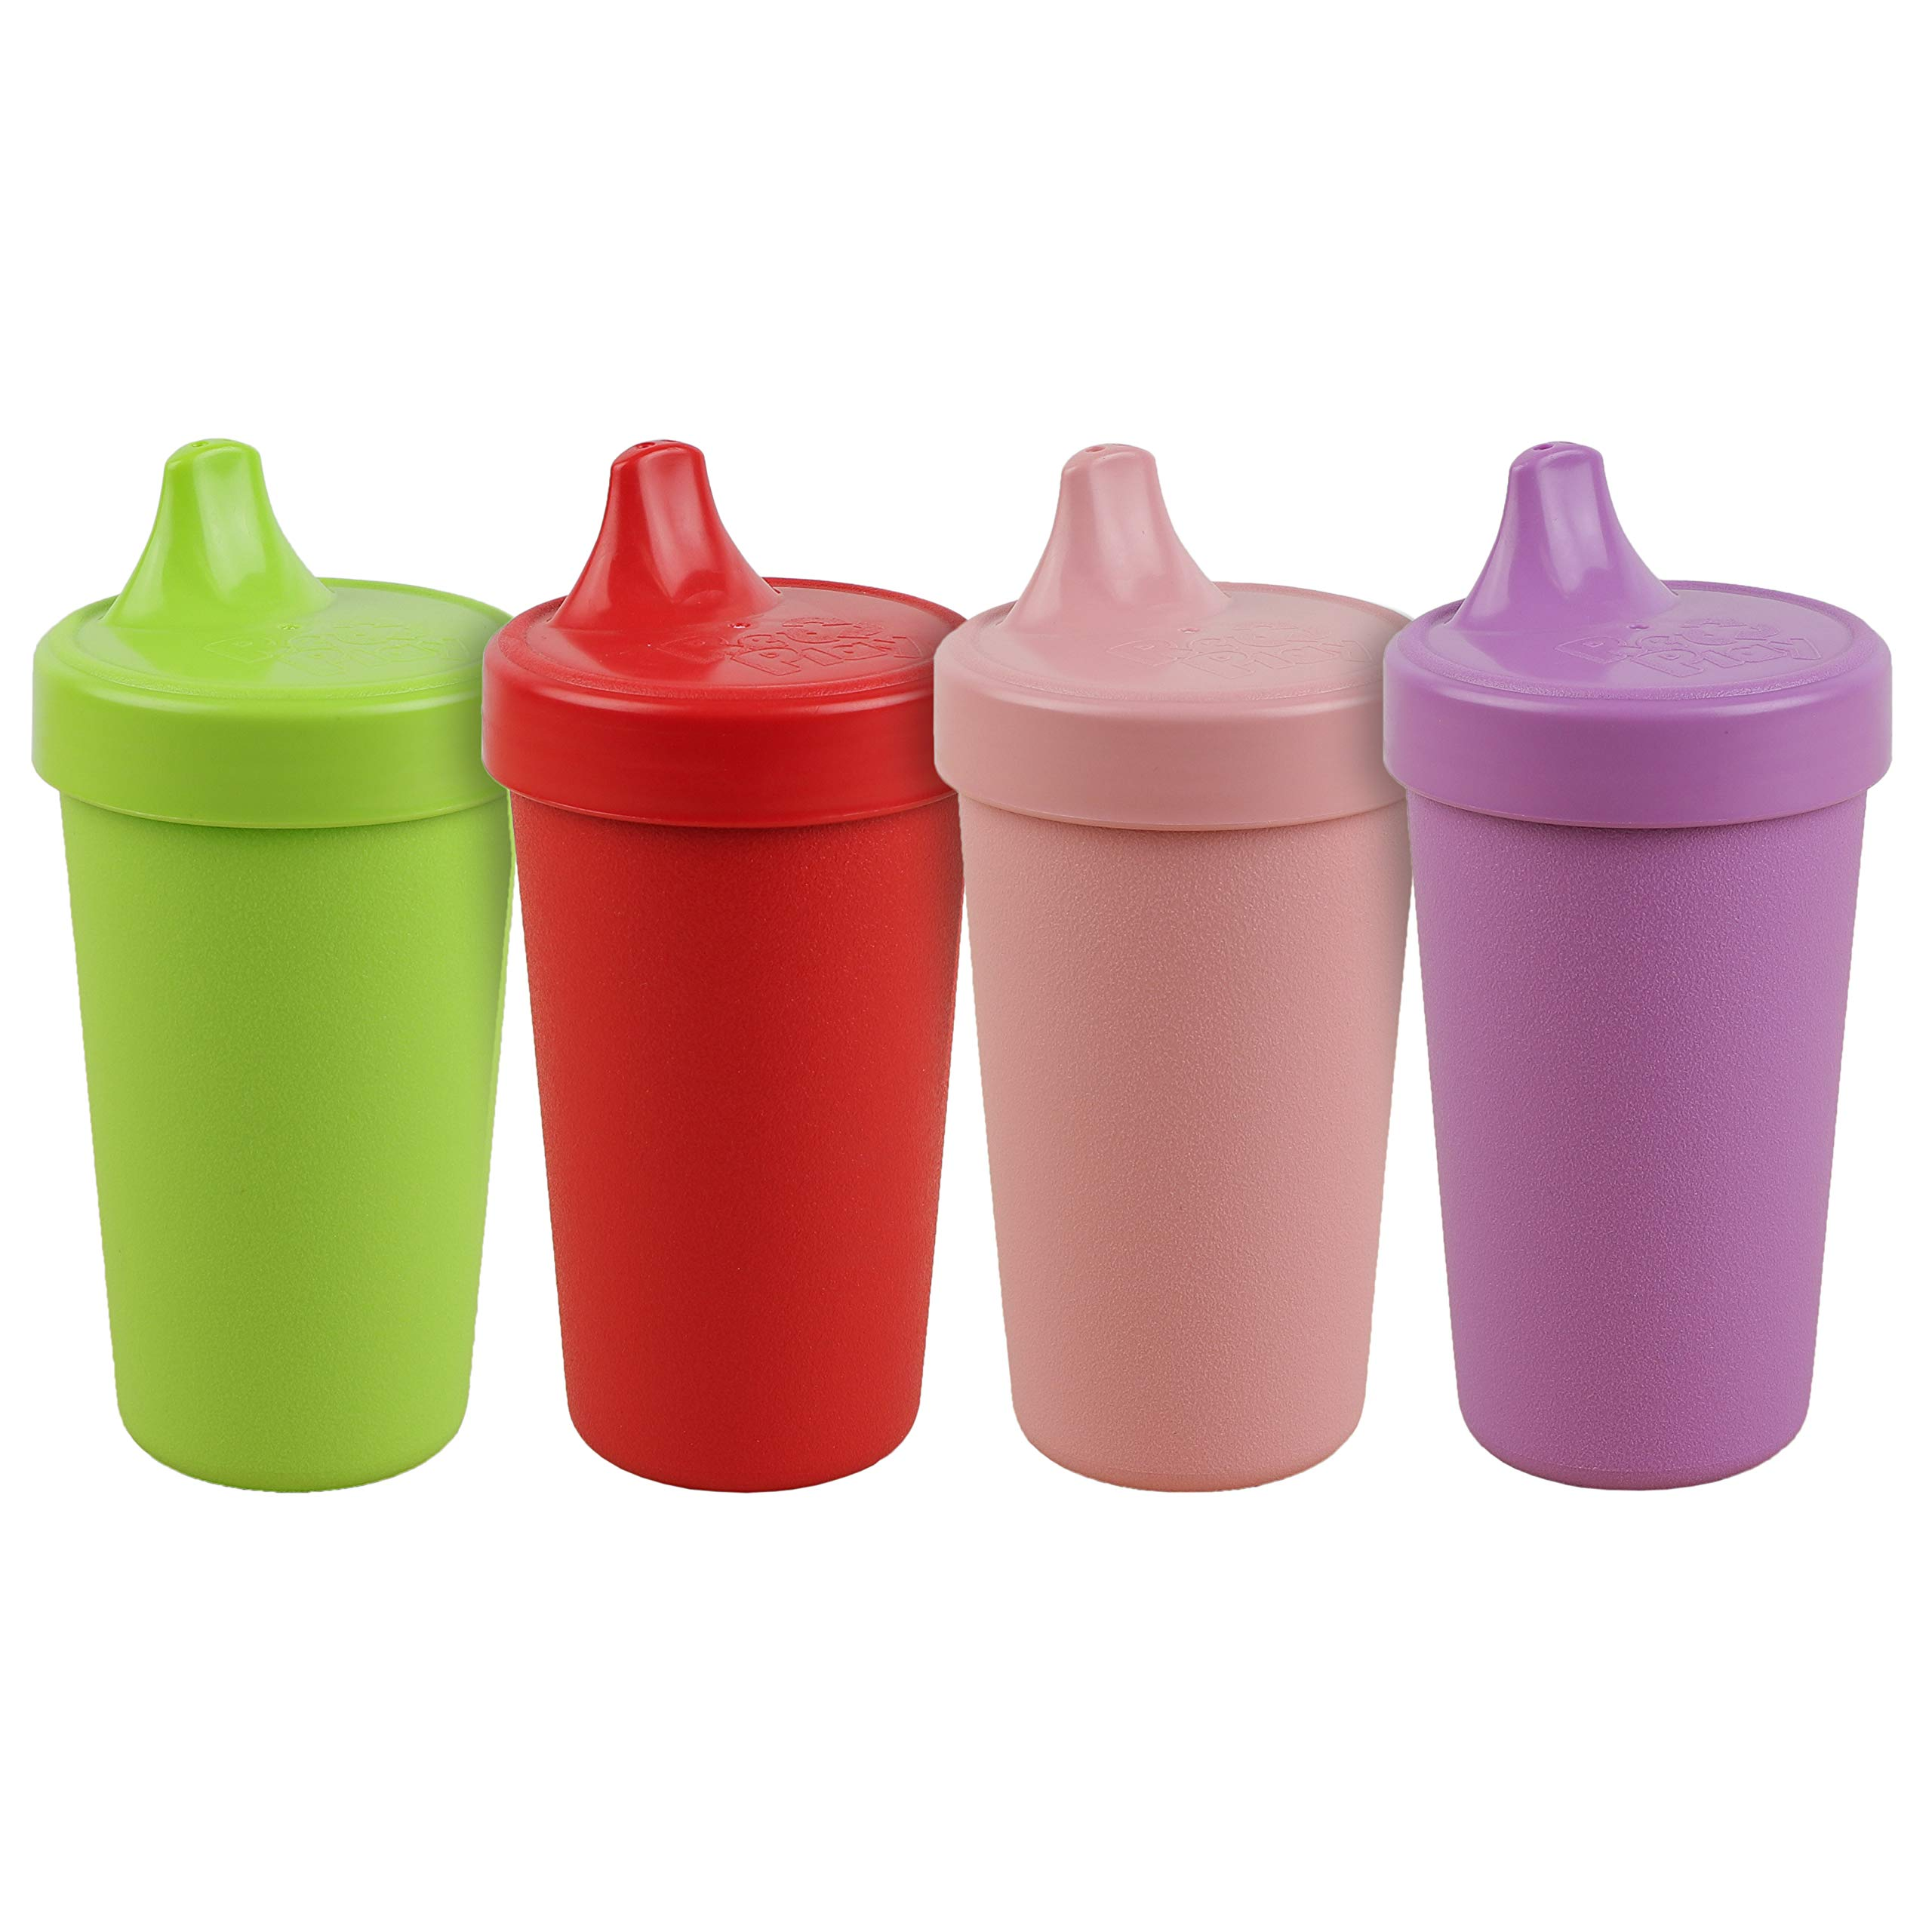 Re-Play Made in The USA 4pk No Spill Cups for Baby, Toddler, and Child Feeding in Lime Green, Red, Blush and Purple | Made from Eco Friendly Heavyweight Recycled Milk Jugs | (Grinchmas+)